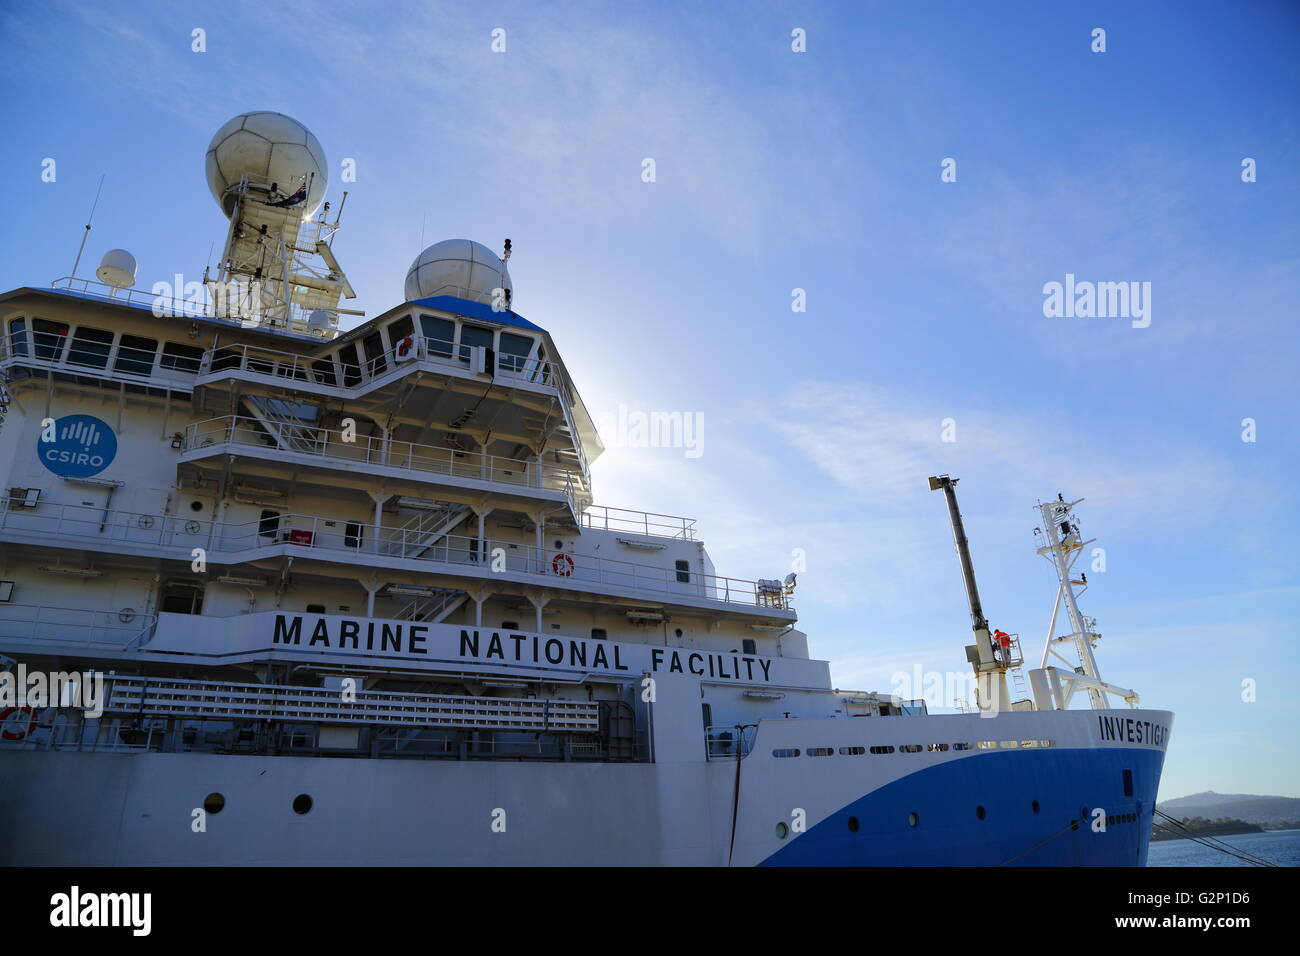 The CSIRO Marine National Facility 'RV Investigator' docked in Sullivans Cove, on the Derwent River, Hobart, - Stock Image